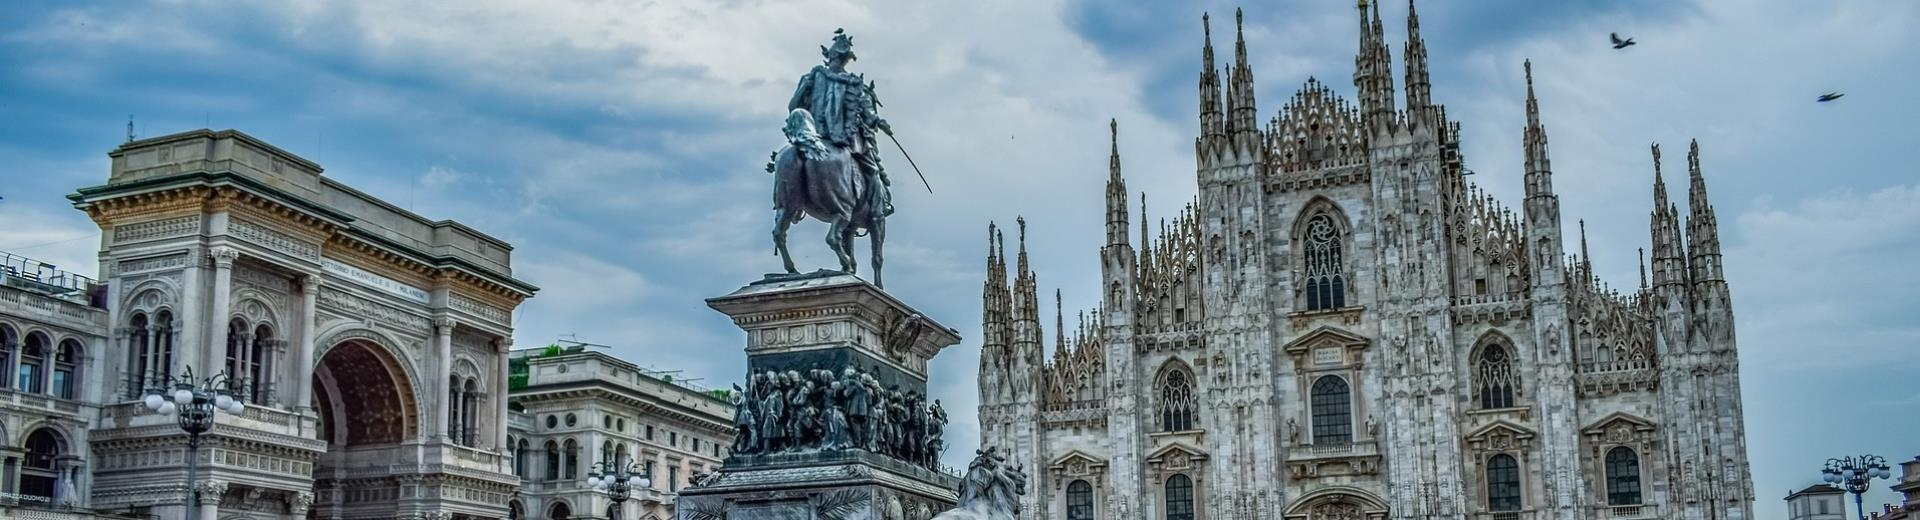 Visit Milan, stay at BW Hotel Cappello d''Oro Bergamo